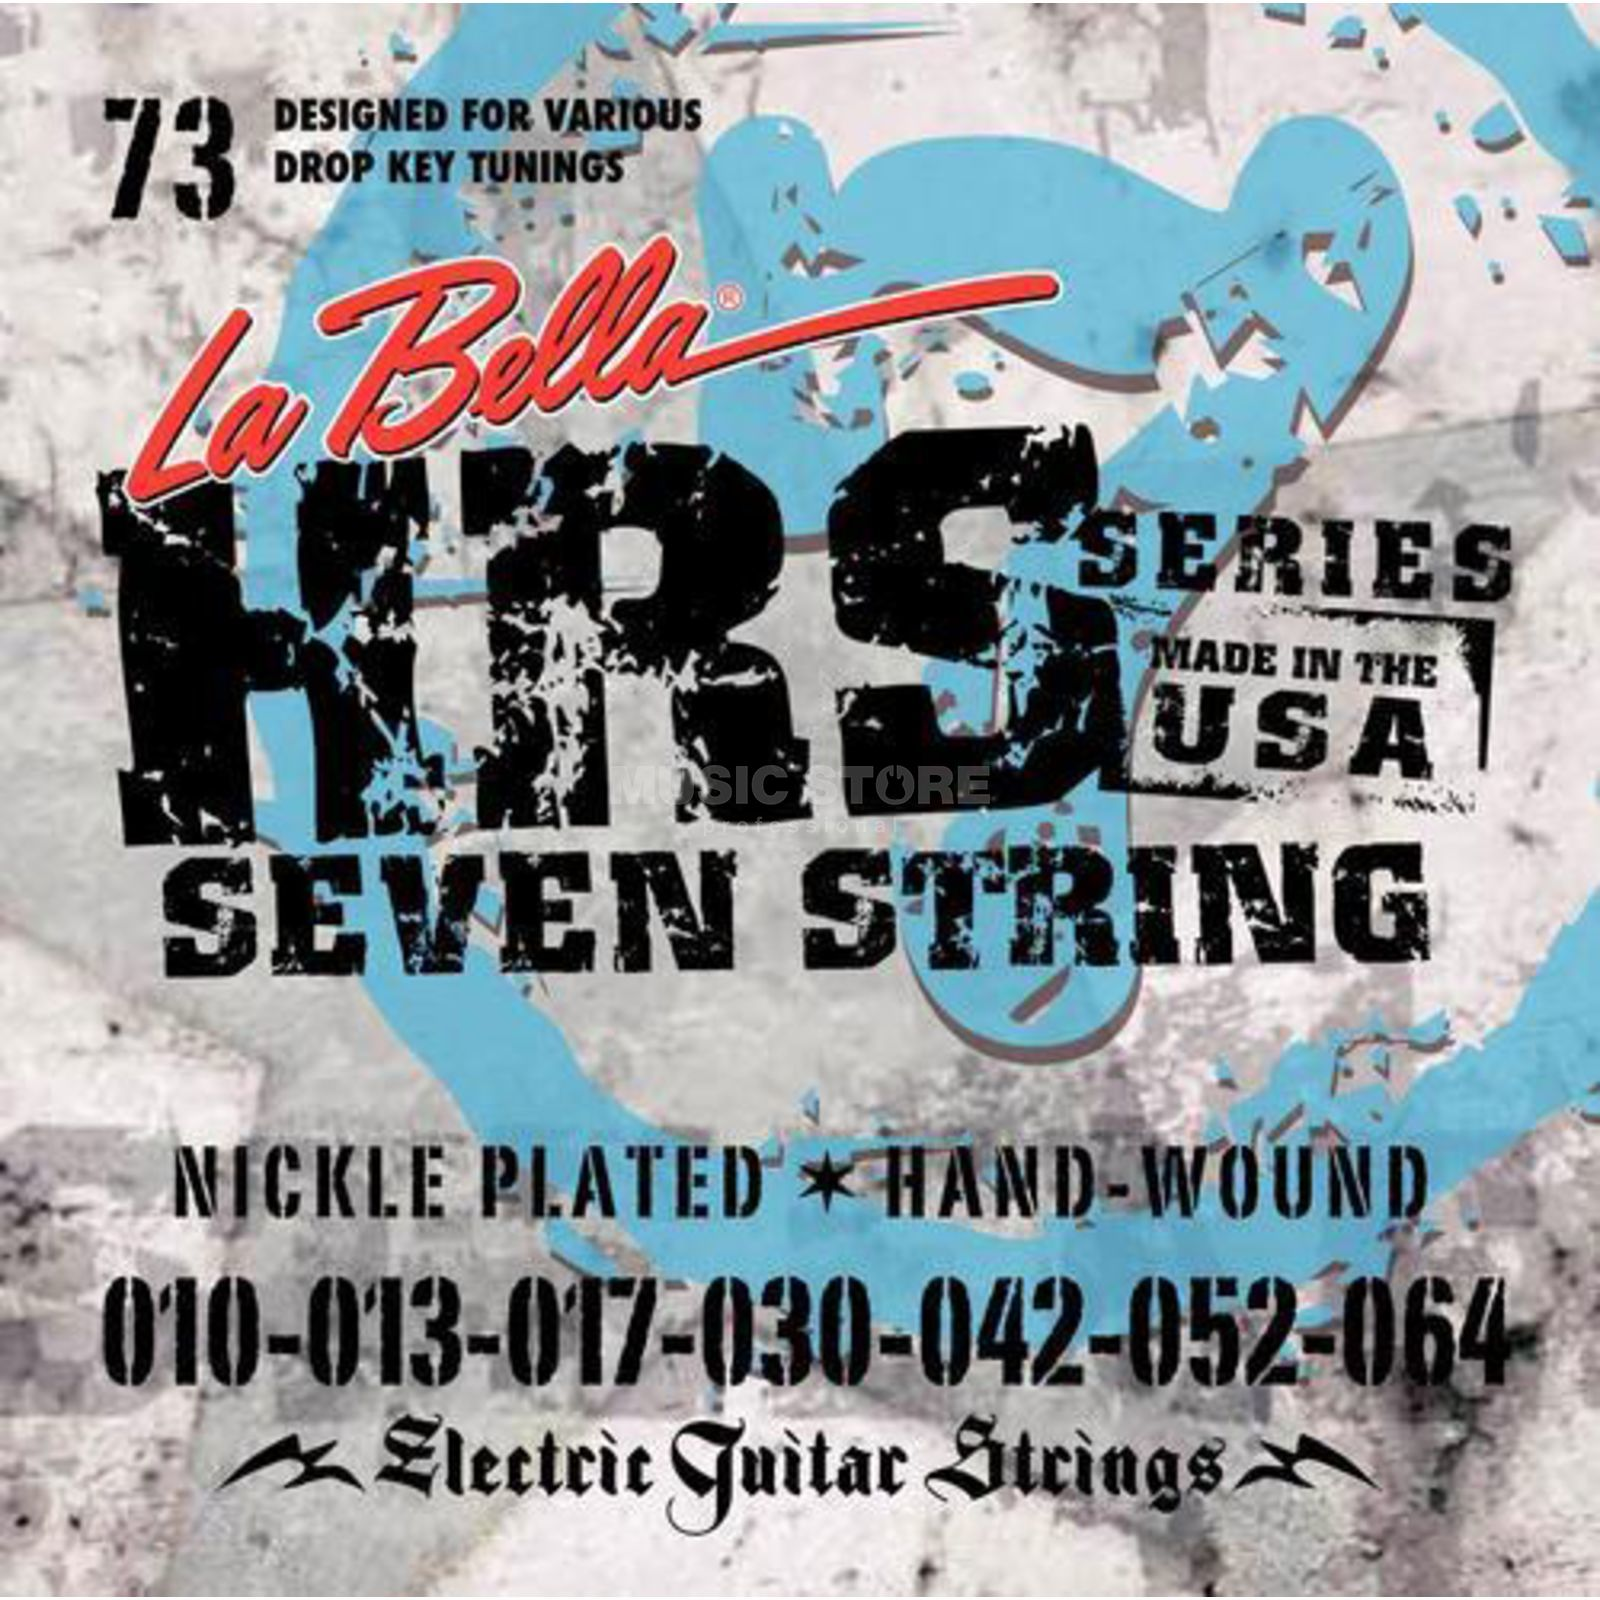 La Bella HRS-73 E-Guitar Strings 010-064 7-string, Nickel Produktbillede